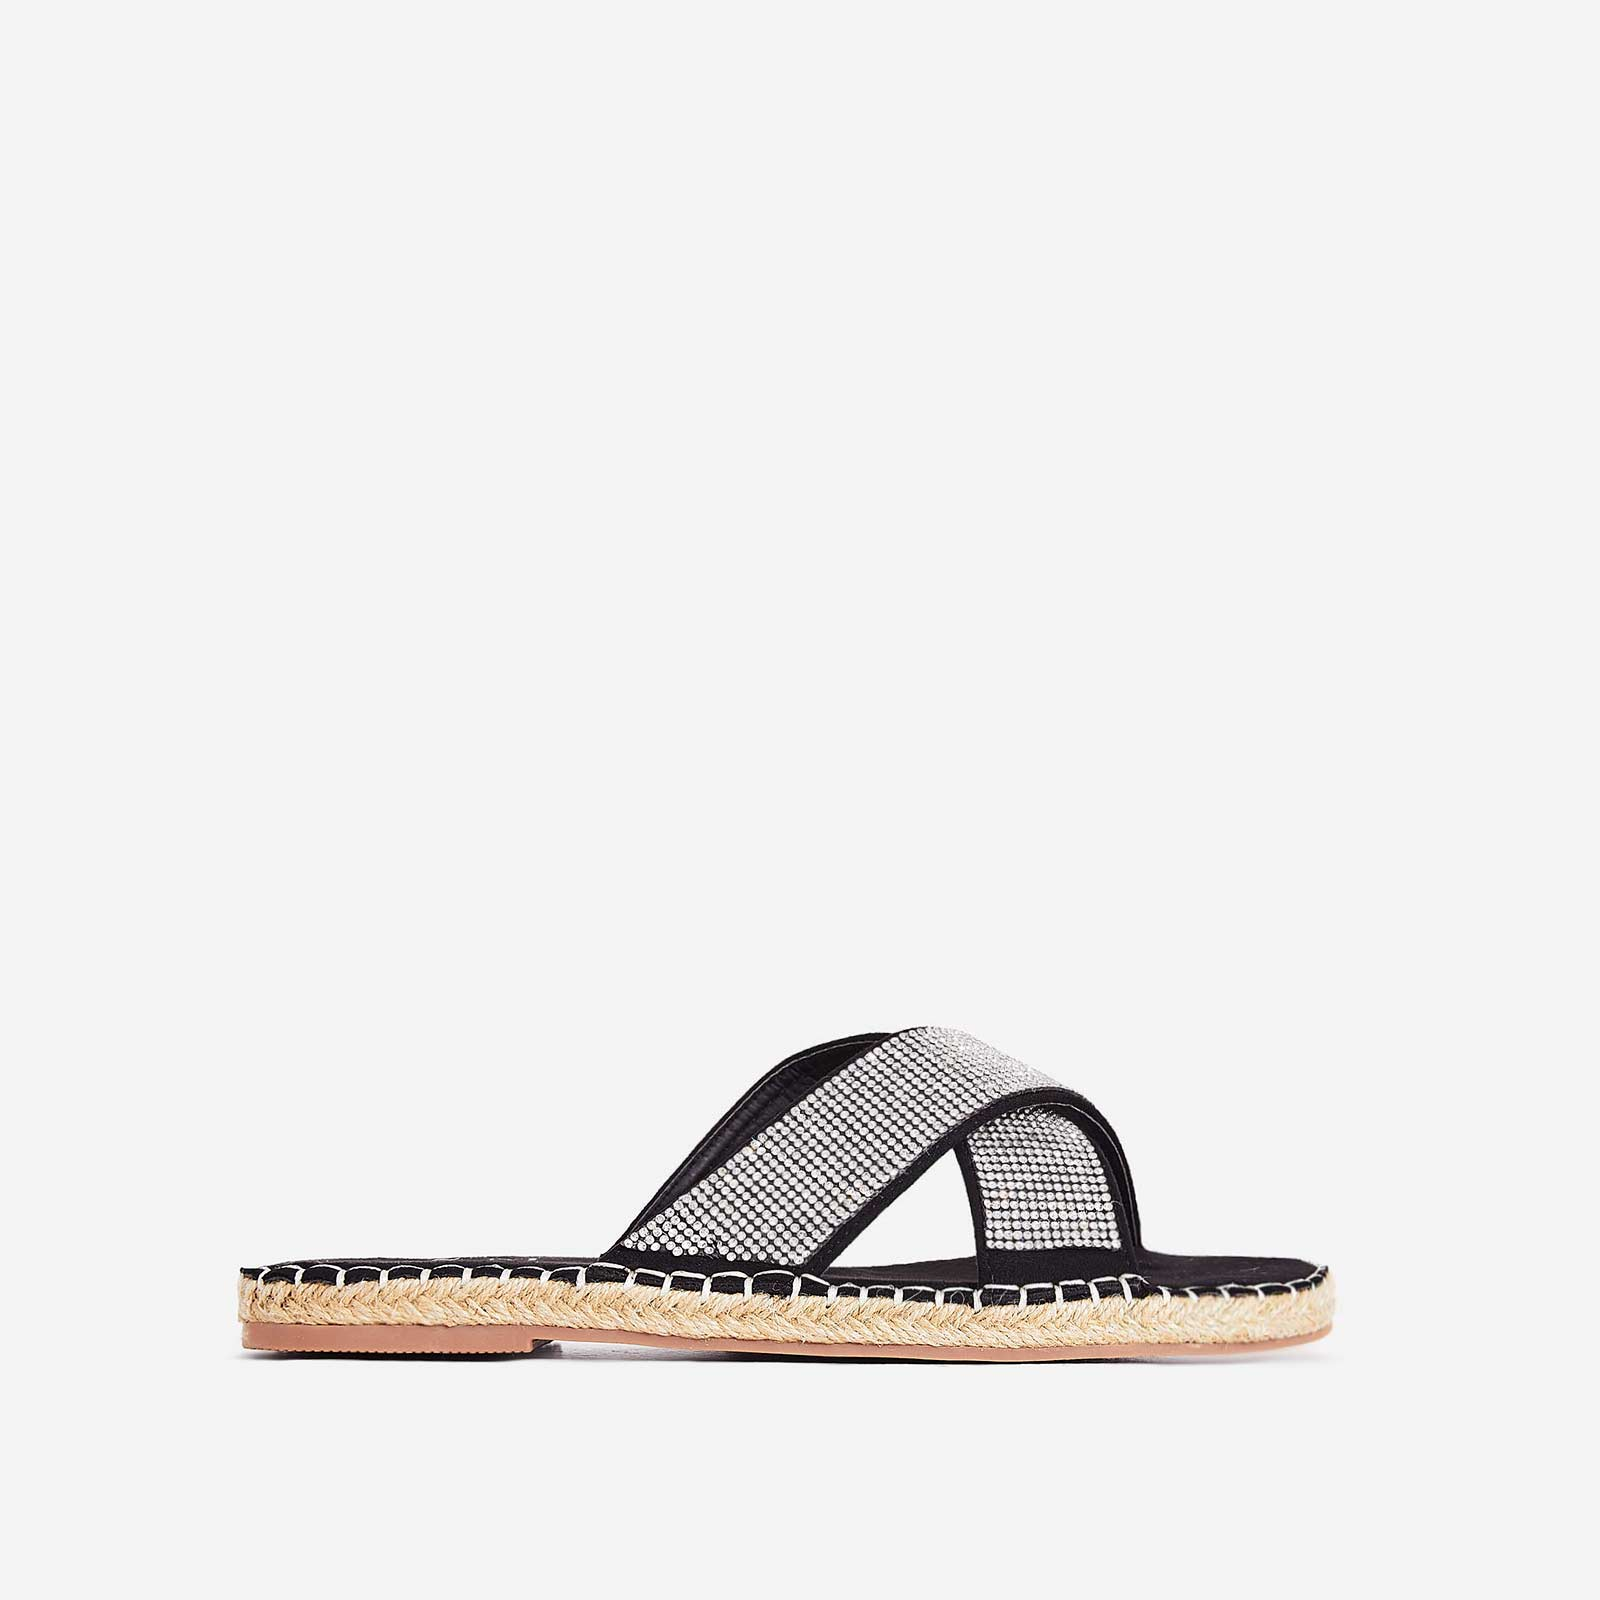 Queen Diamante Detail Espadrille Flat Sandal In Black Faux Suede